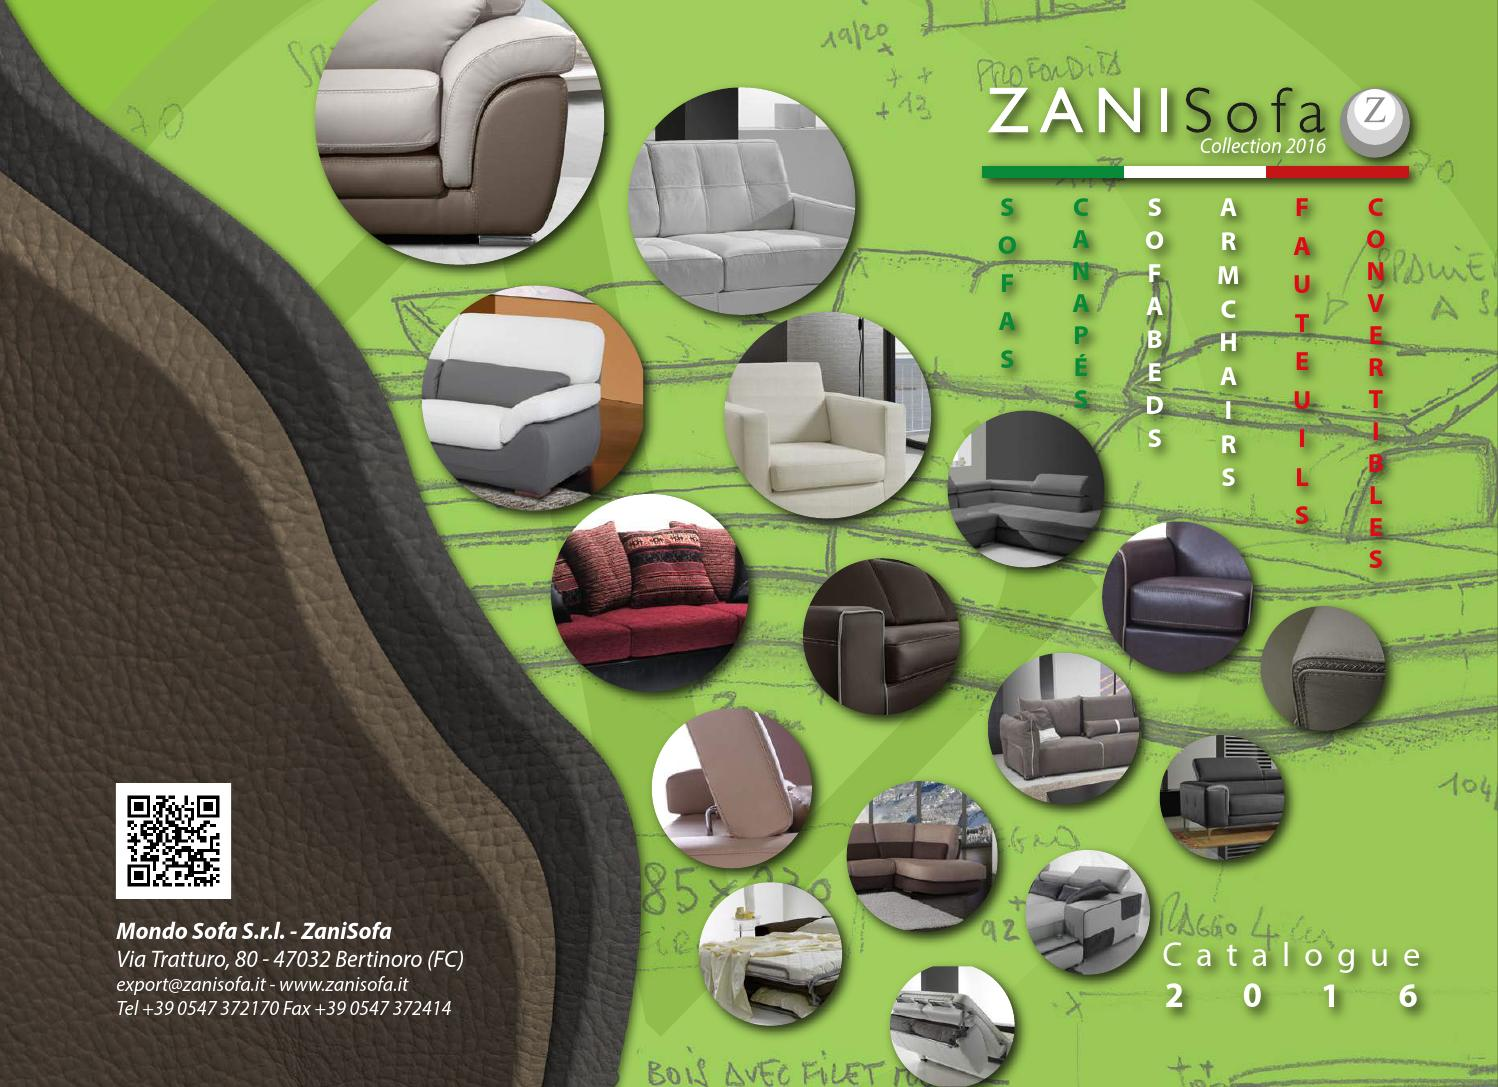 Magnificent Catalogo Zani Sofa By Mobilpro Issuu Download Free Architecture Designs Scobabritishbridgeorg